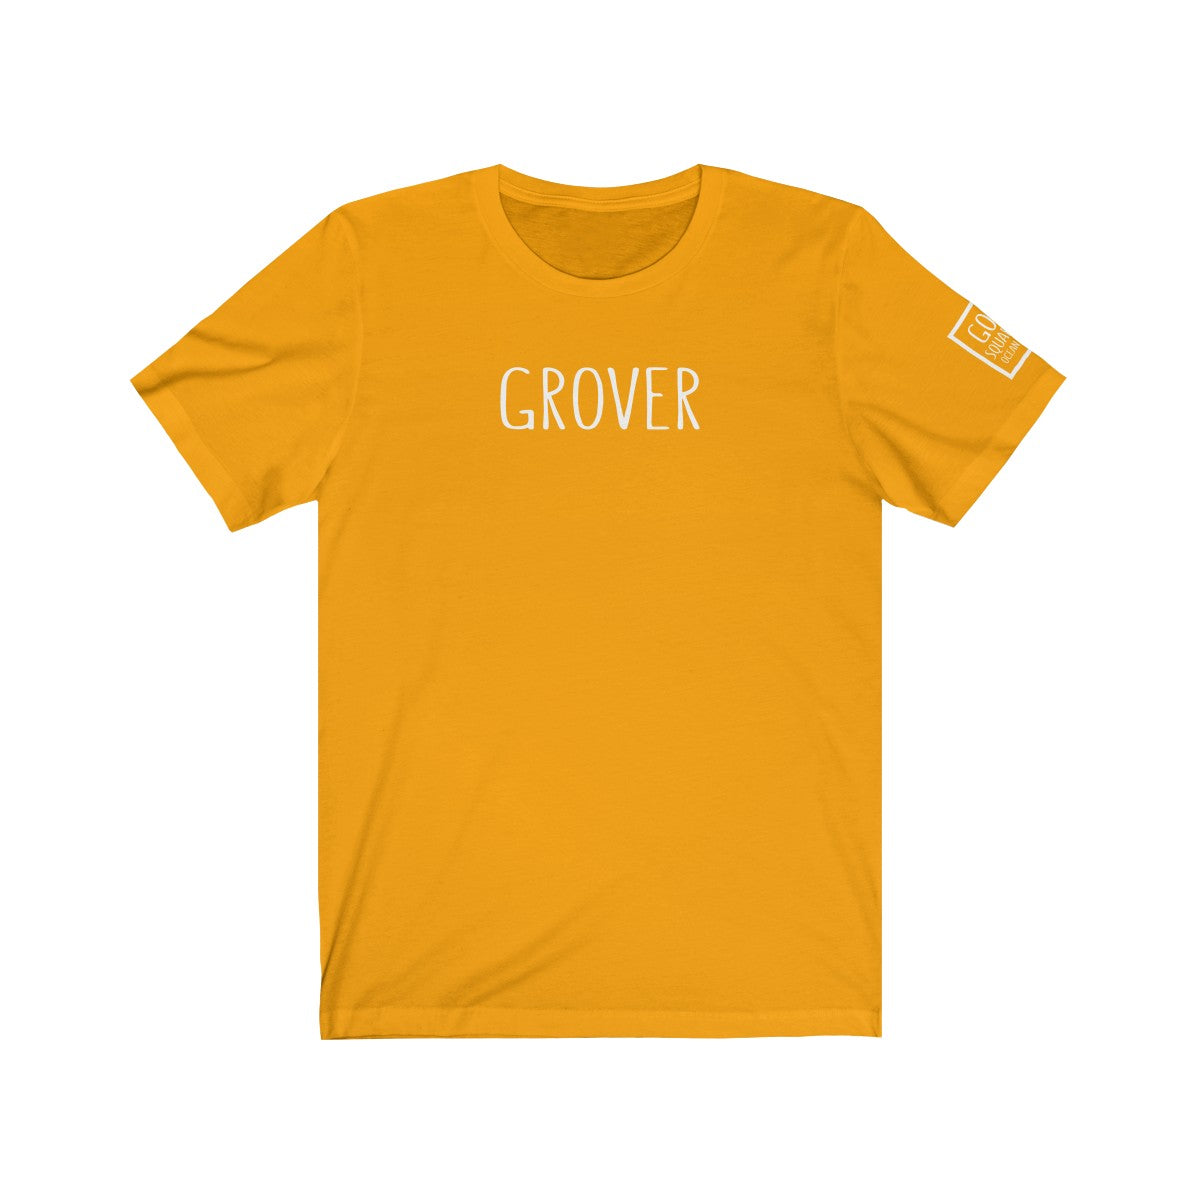 Grover Short Sleeve Insignia TShirt: Multiple Colors